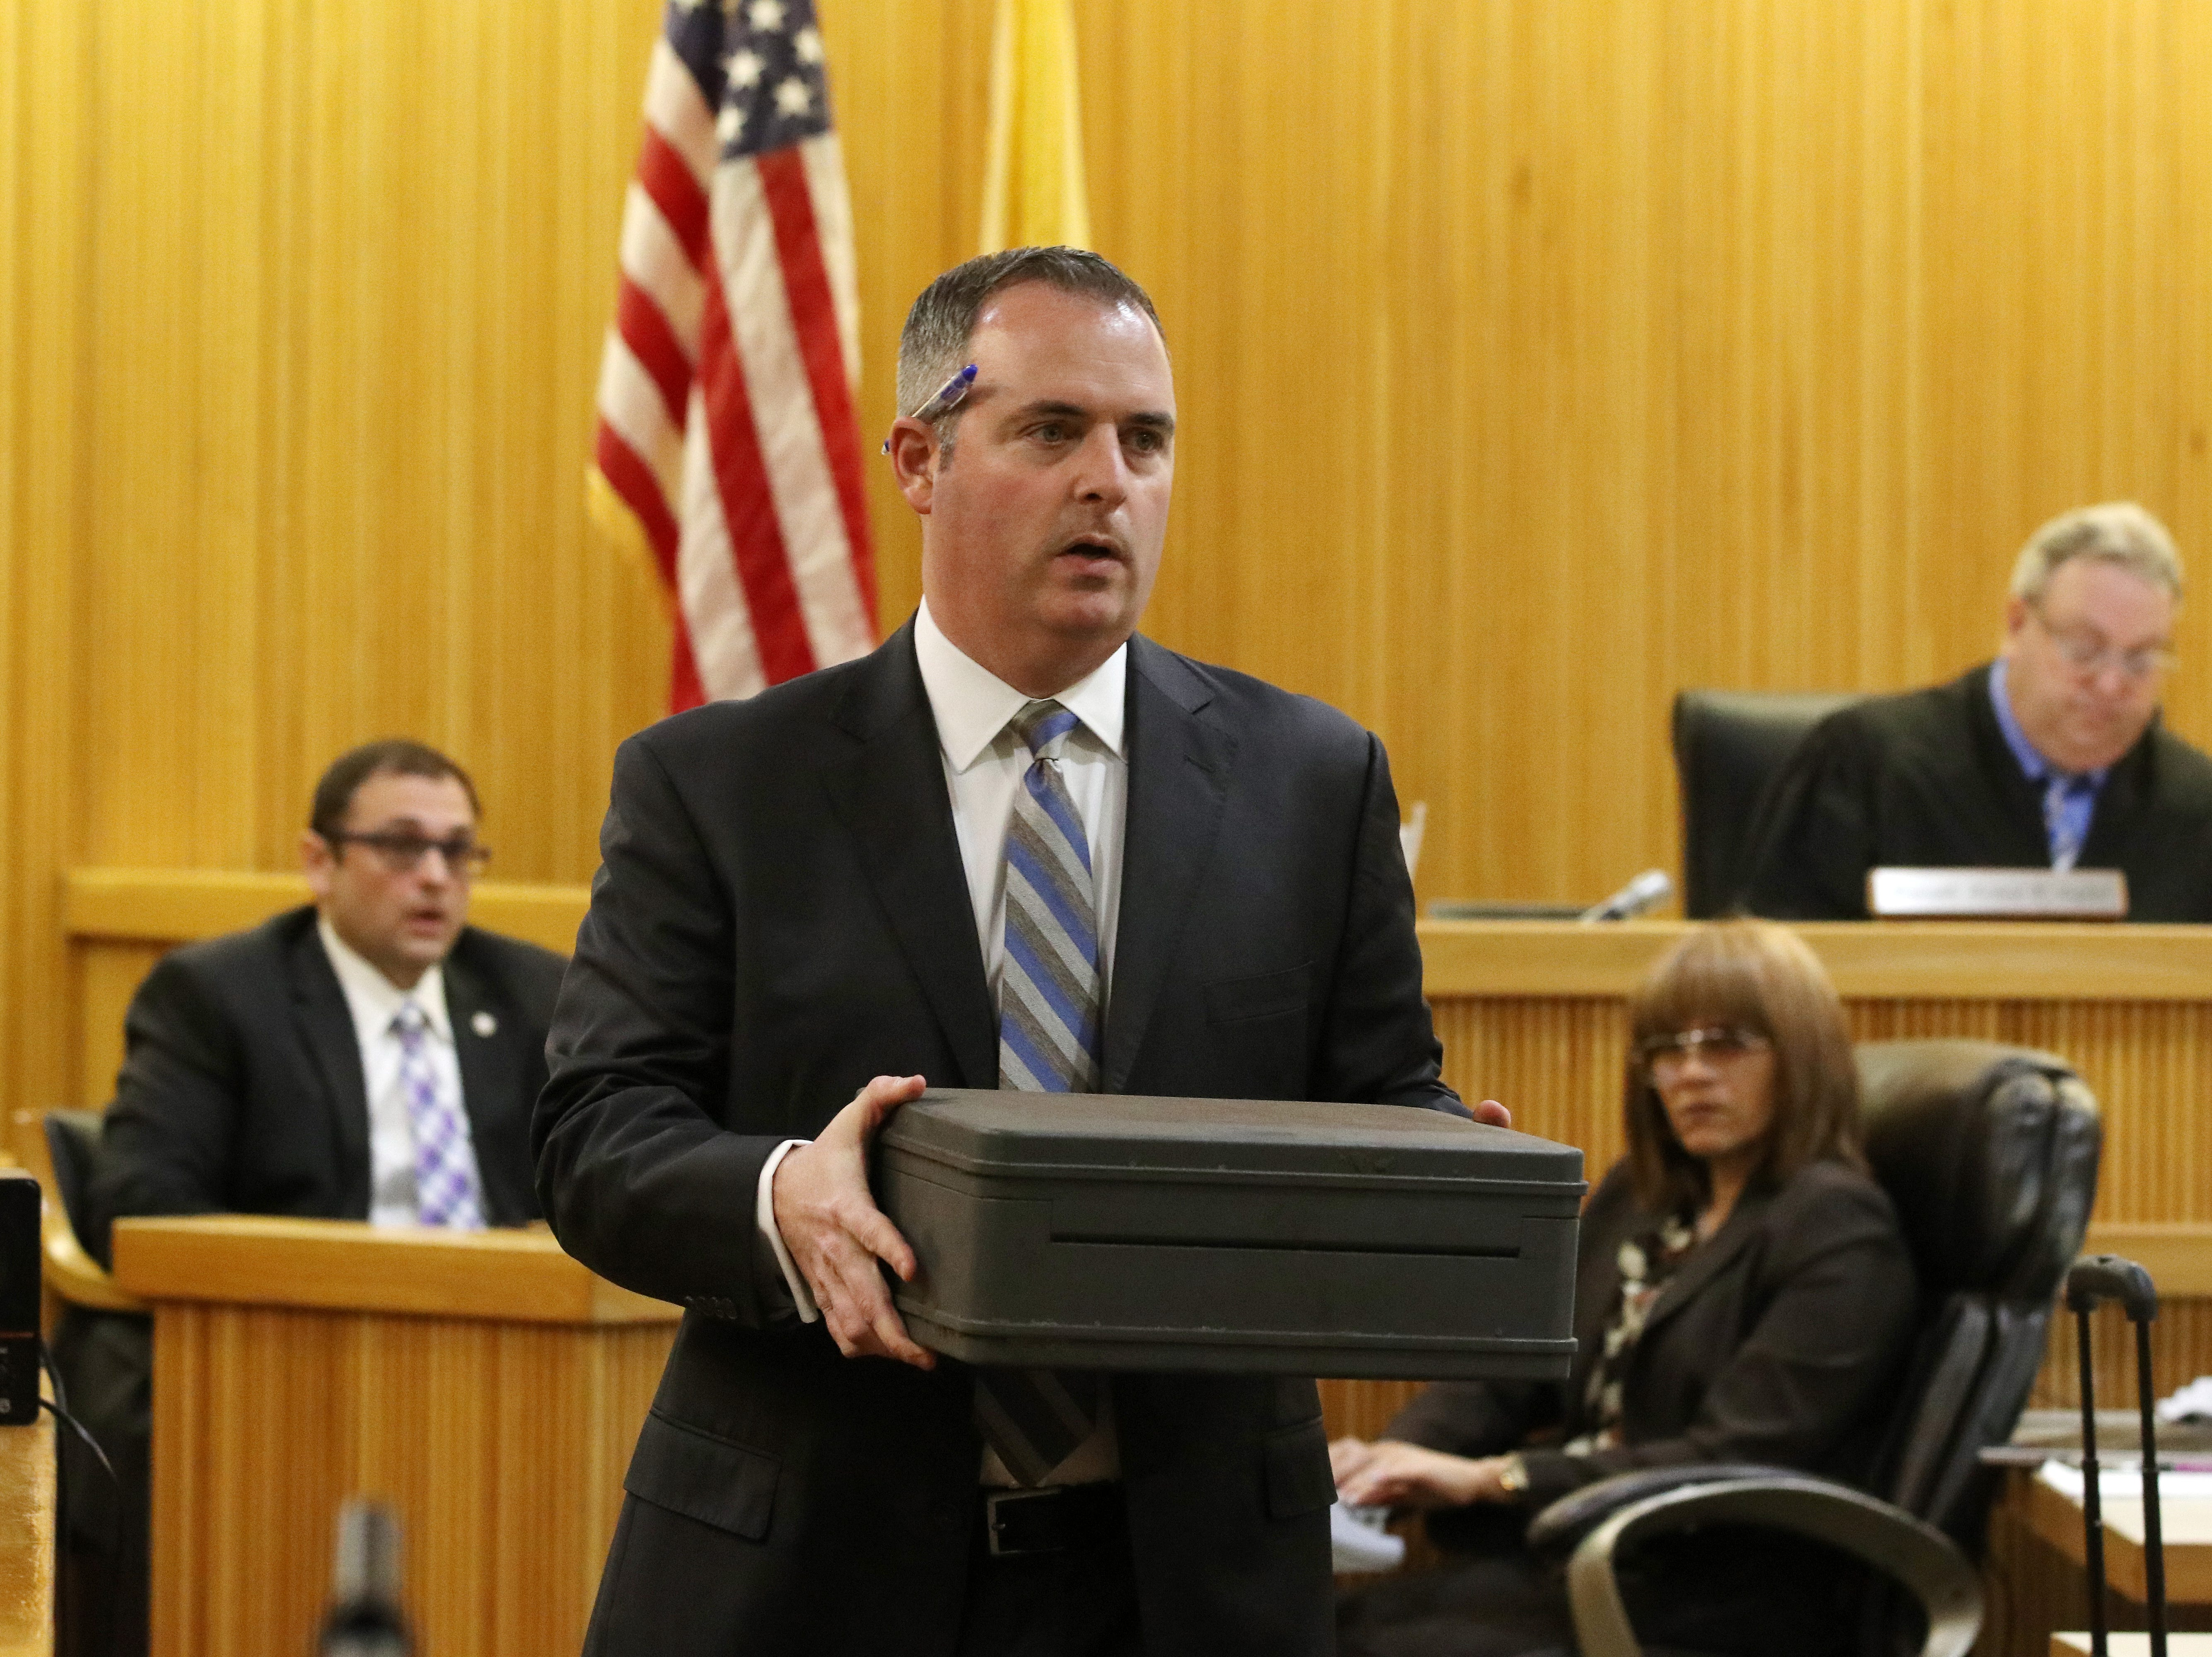 Christopher Decker, assistant Monmouth County prosecutor, carries Sarah Stern's safe which was found in Shark River Park, as he questions Detective Nicholas Cattelona of the Monmouth County Prosecutor's Office, during the trial of Liam McAtasney, who is charged with the murder of former high school classmate, Sarah Stern, before Superior Court Judge Richard W. English at the Monmouth County Courthouse in Freehold, NJ Wednesday, February 6, 2019.